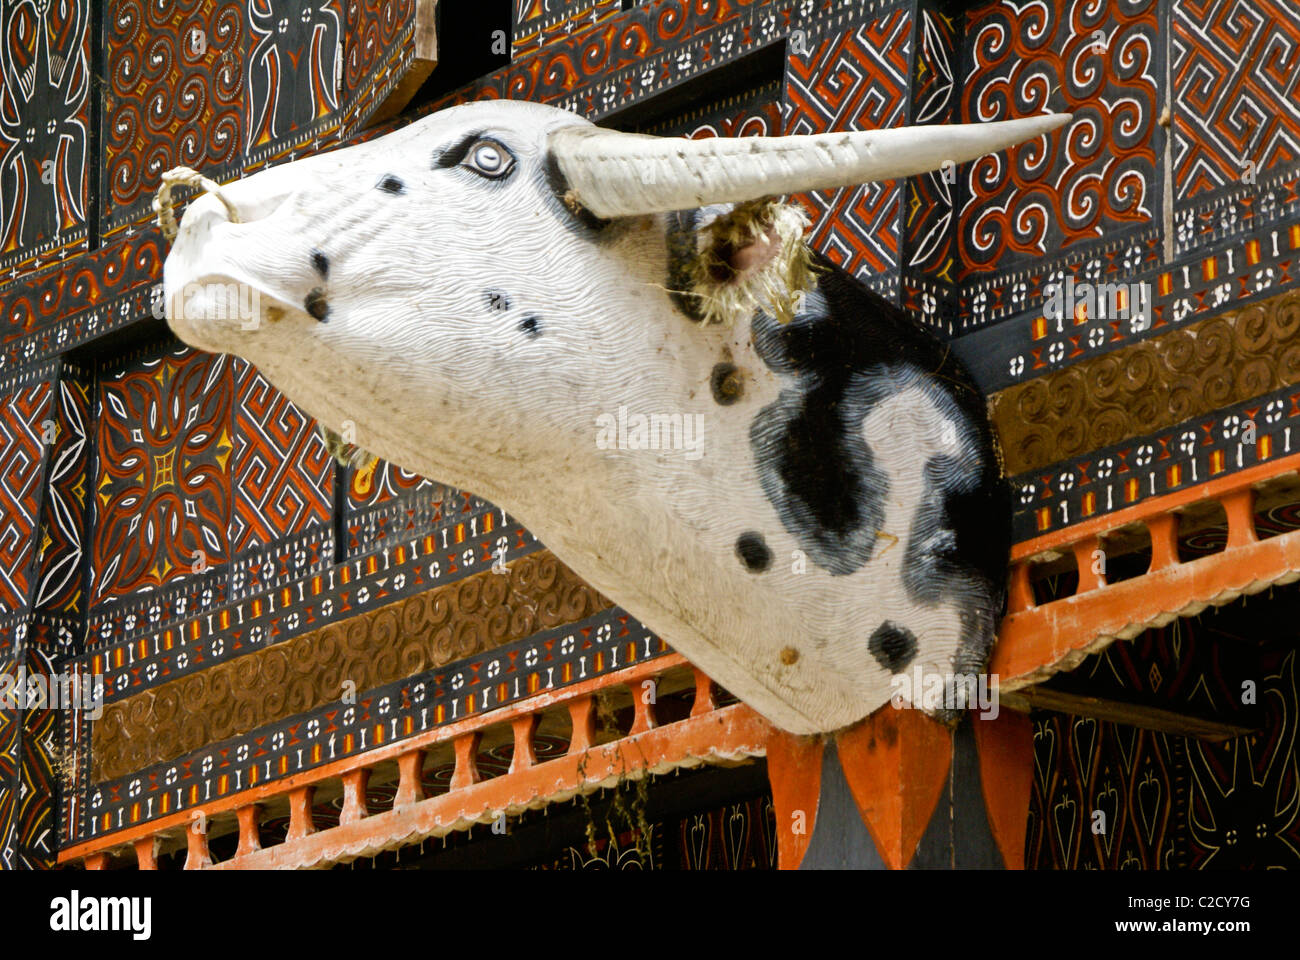 Water buffalo head on Torajan house, Kete Kesu, Tana Toraja, South Sulawesi, Indonesia - Stock Image